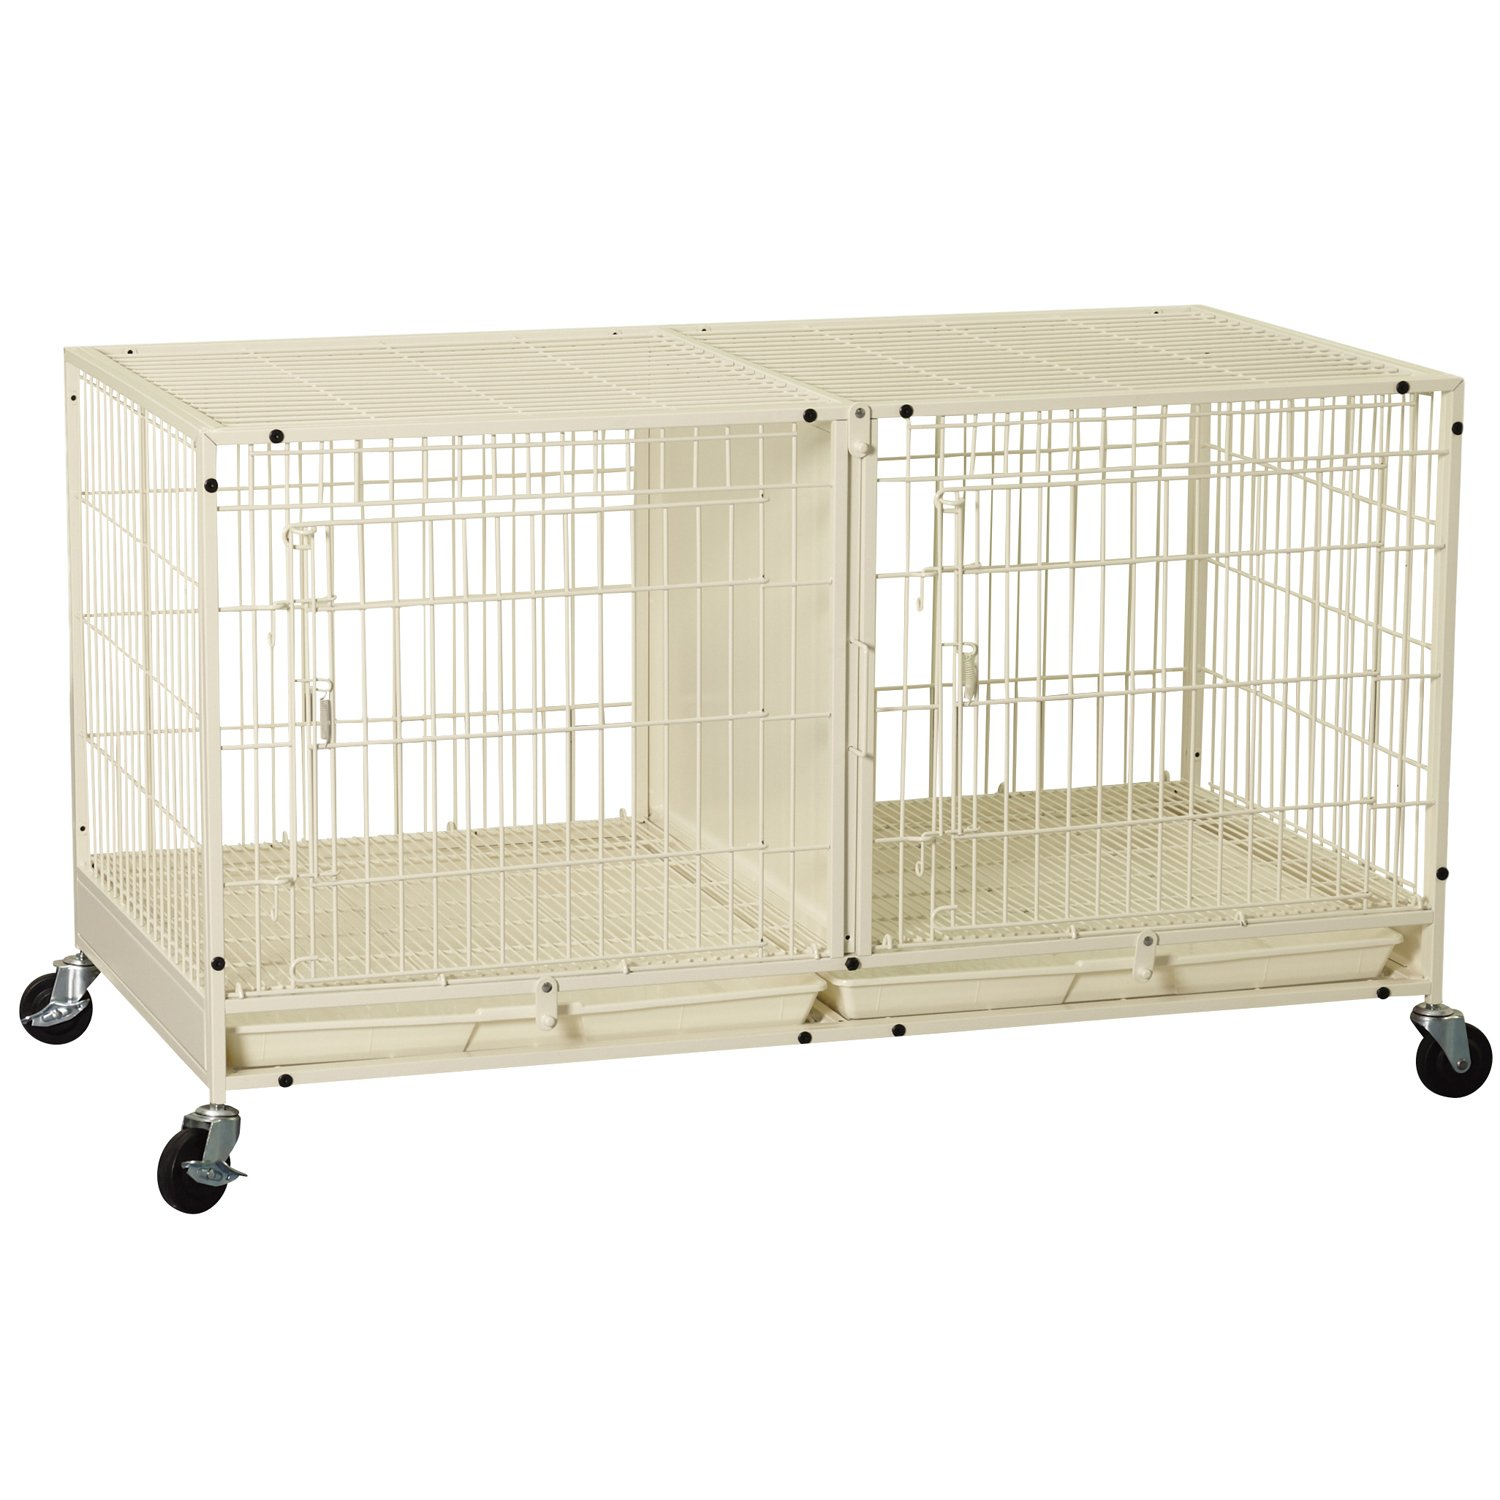 ProSelect Steel Modular Pet Cage with Plastic Tray, Ivory